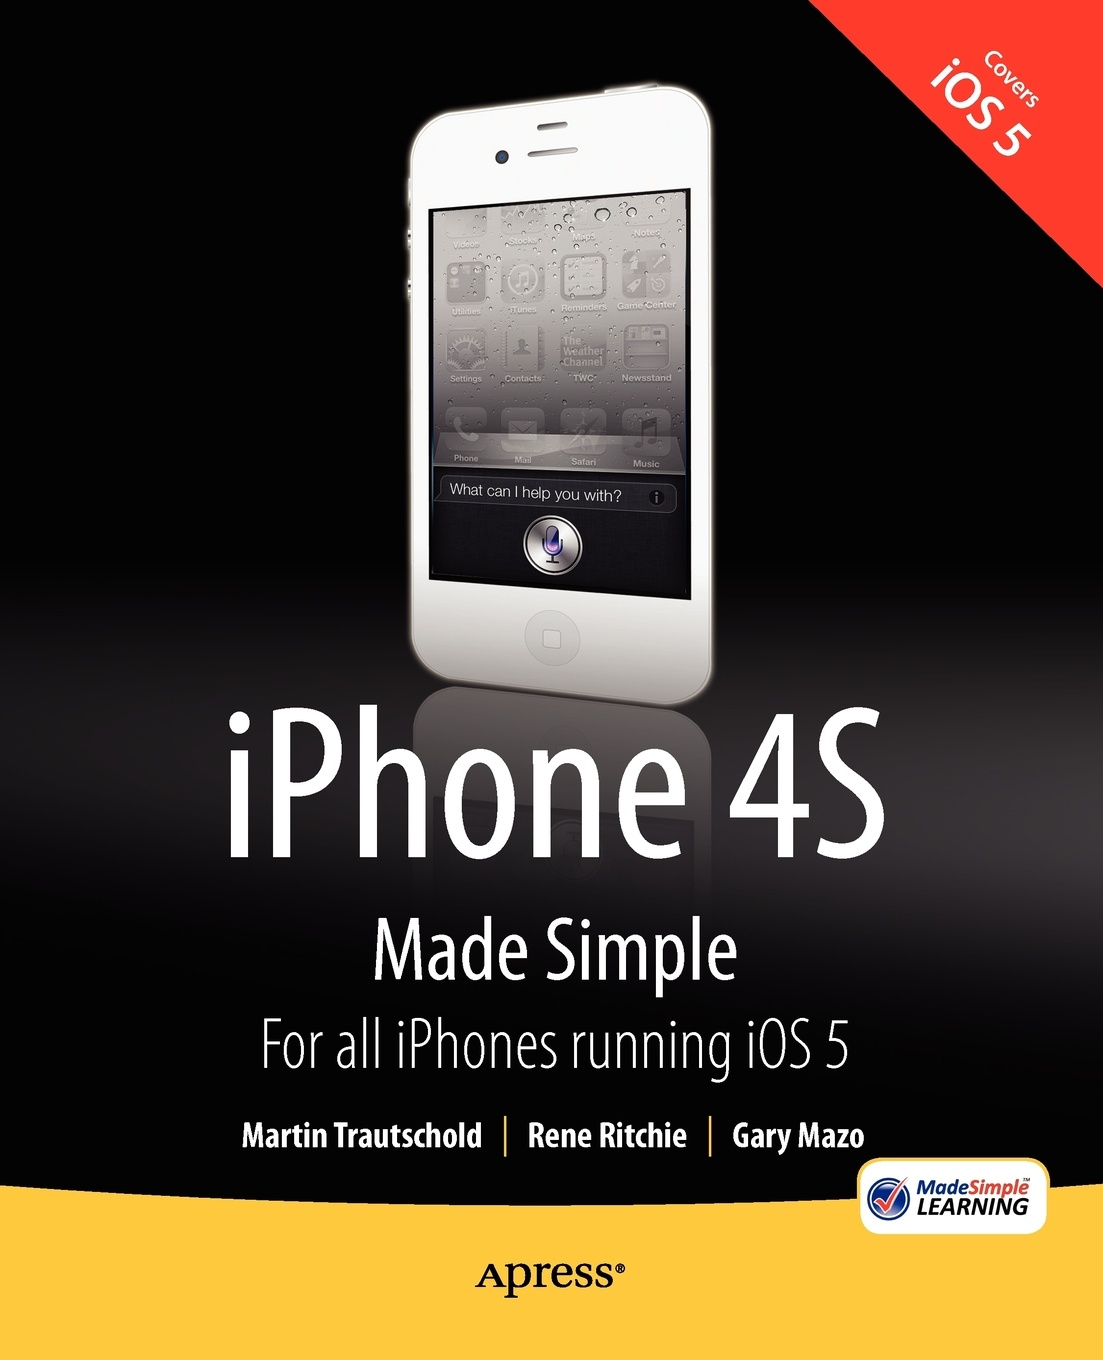 Martin Trautschold, Gary Mazo, Rene Ritchie iPhone 4s Made Simple. For and Other IOS 5-Enabled Iphones